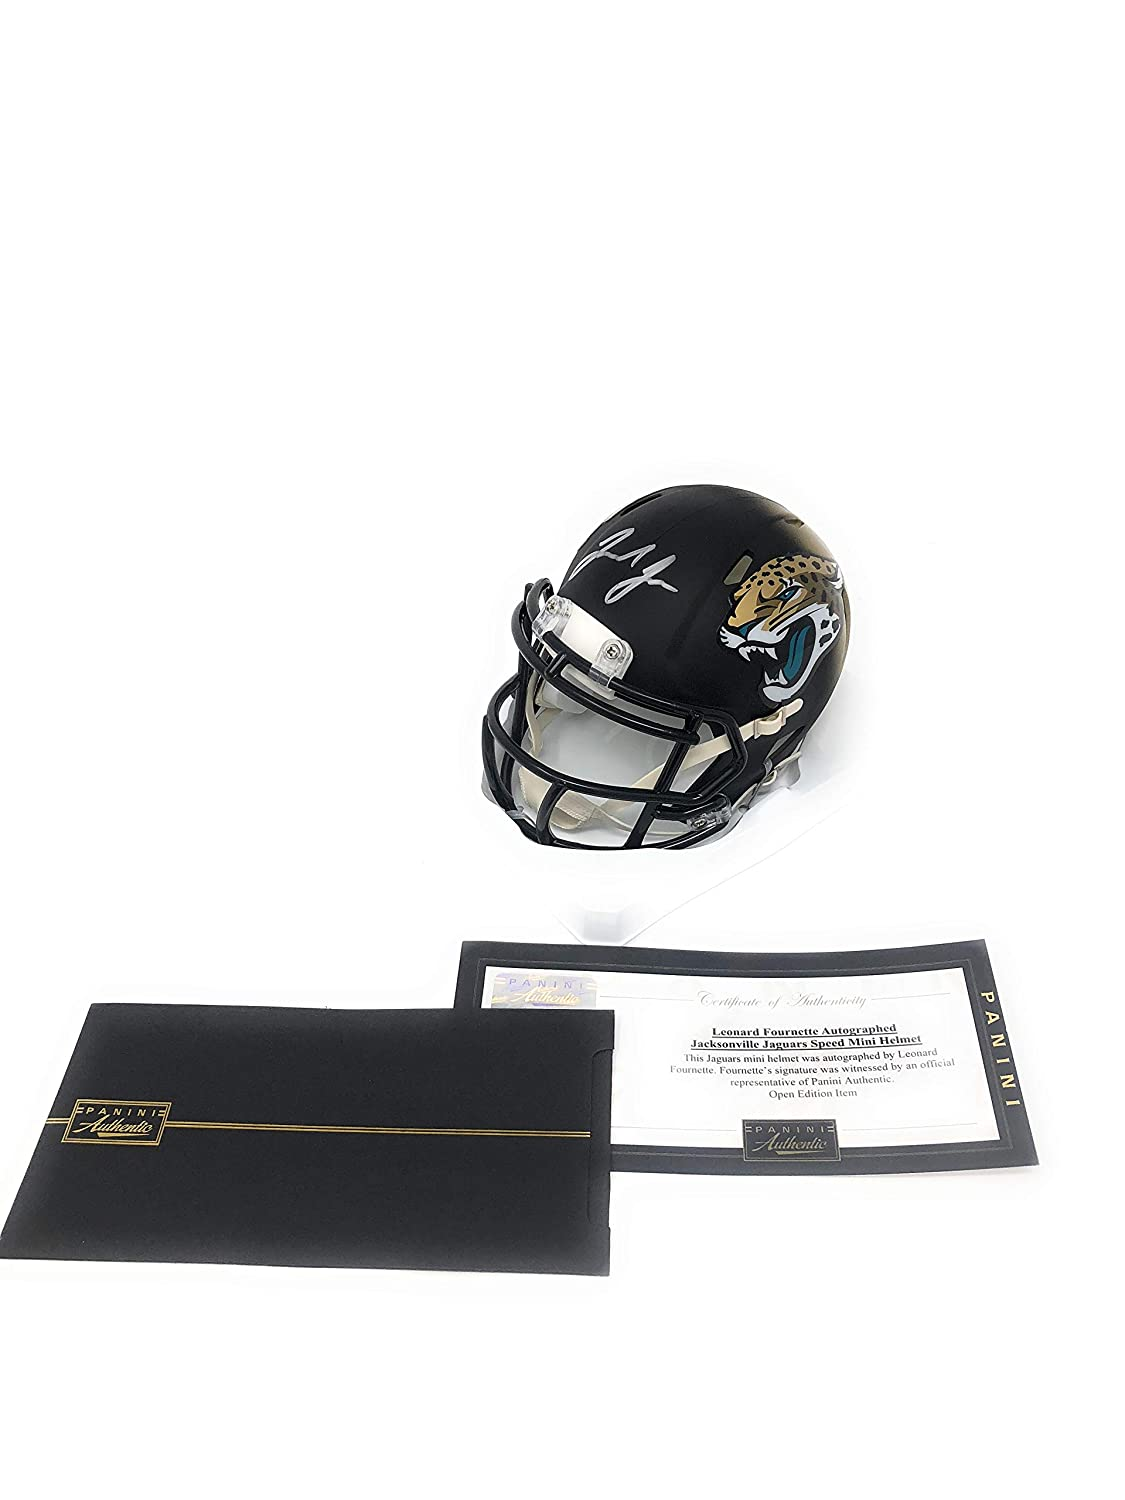 Leonard Fournette Jacksonville Jaguars Signed Autograph Speed Mini Helmet Panini Authentic Certified